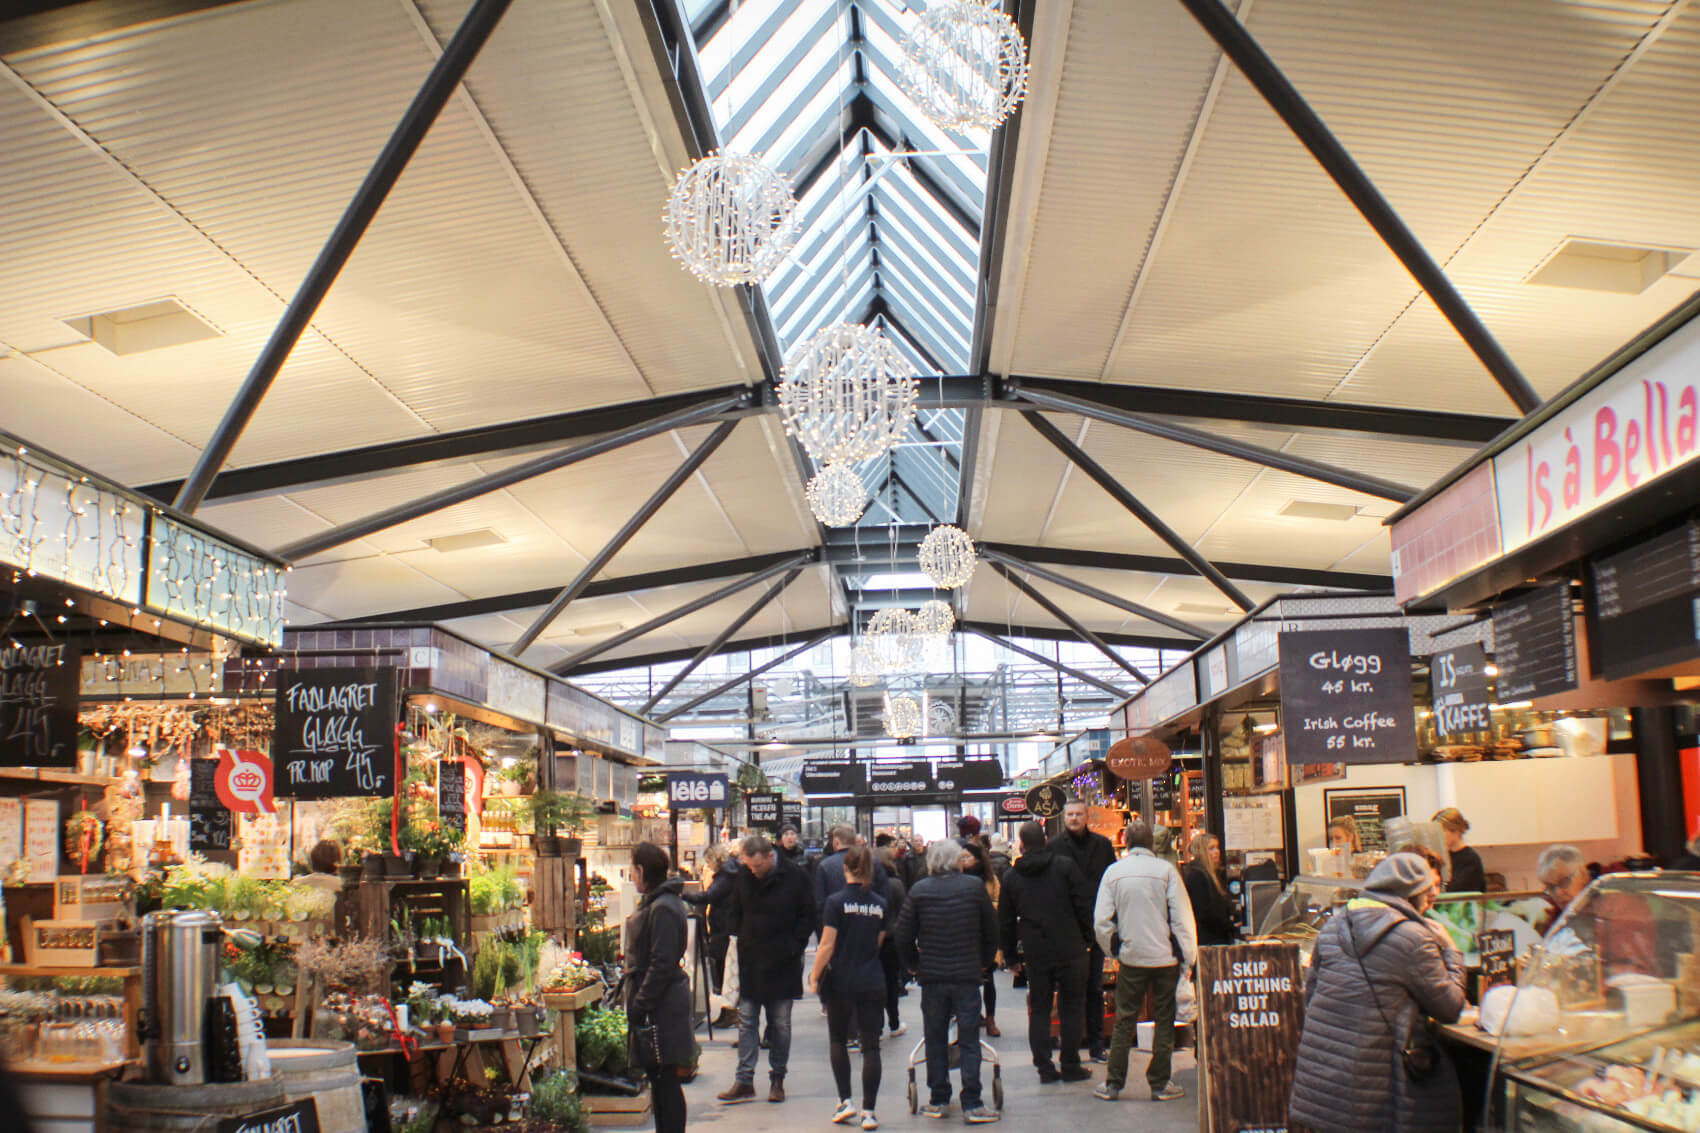 Torvehallarne Food Market in Copenhagen is a fantastic place for budget-friendly groceries and delicious Danish food in Copenhagen, Denmark.